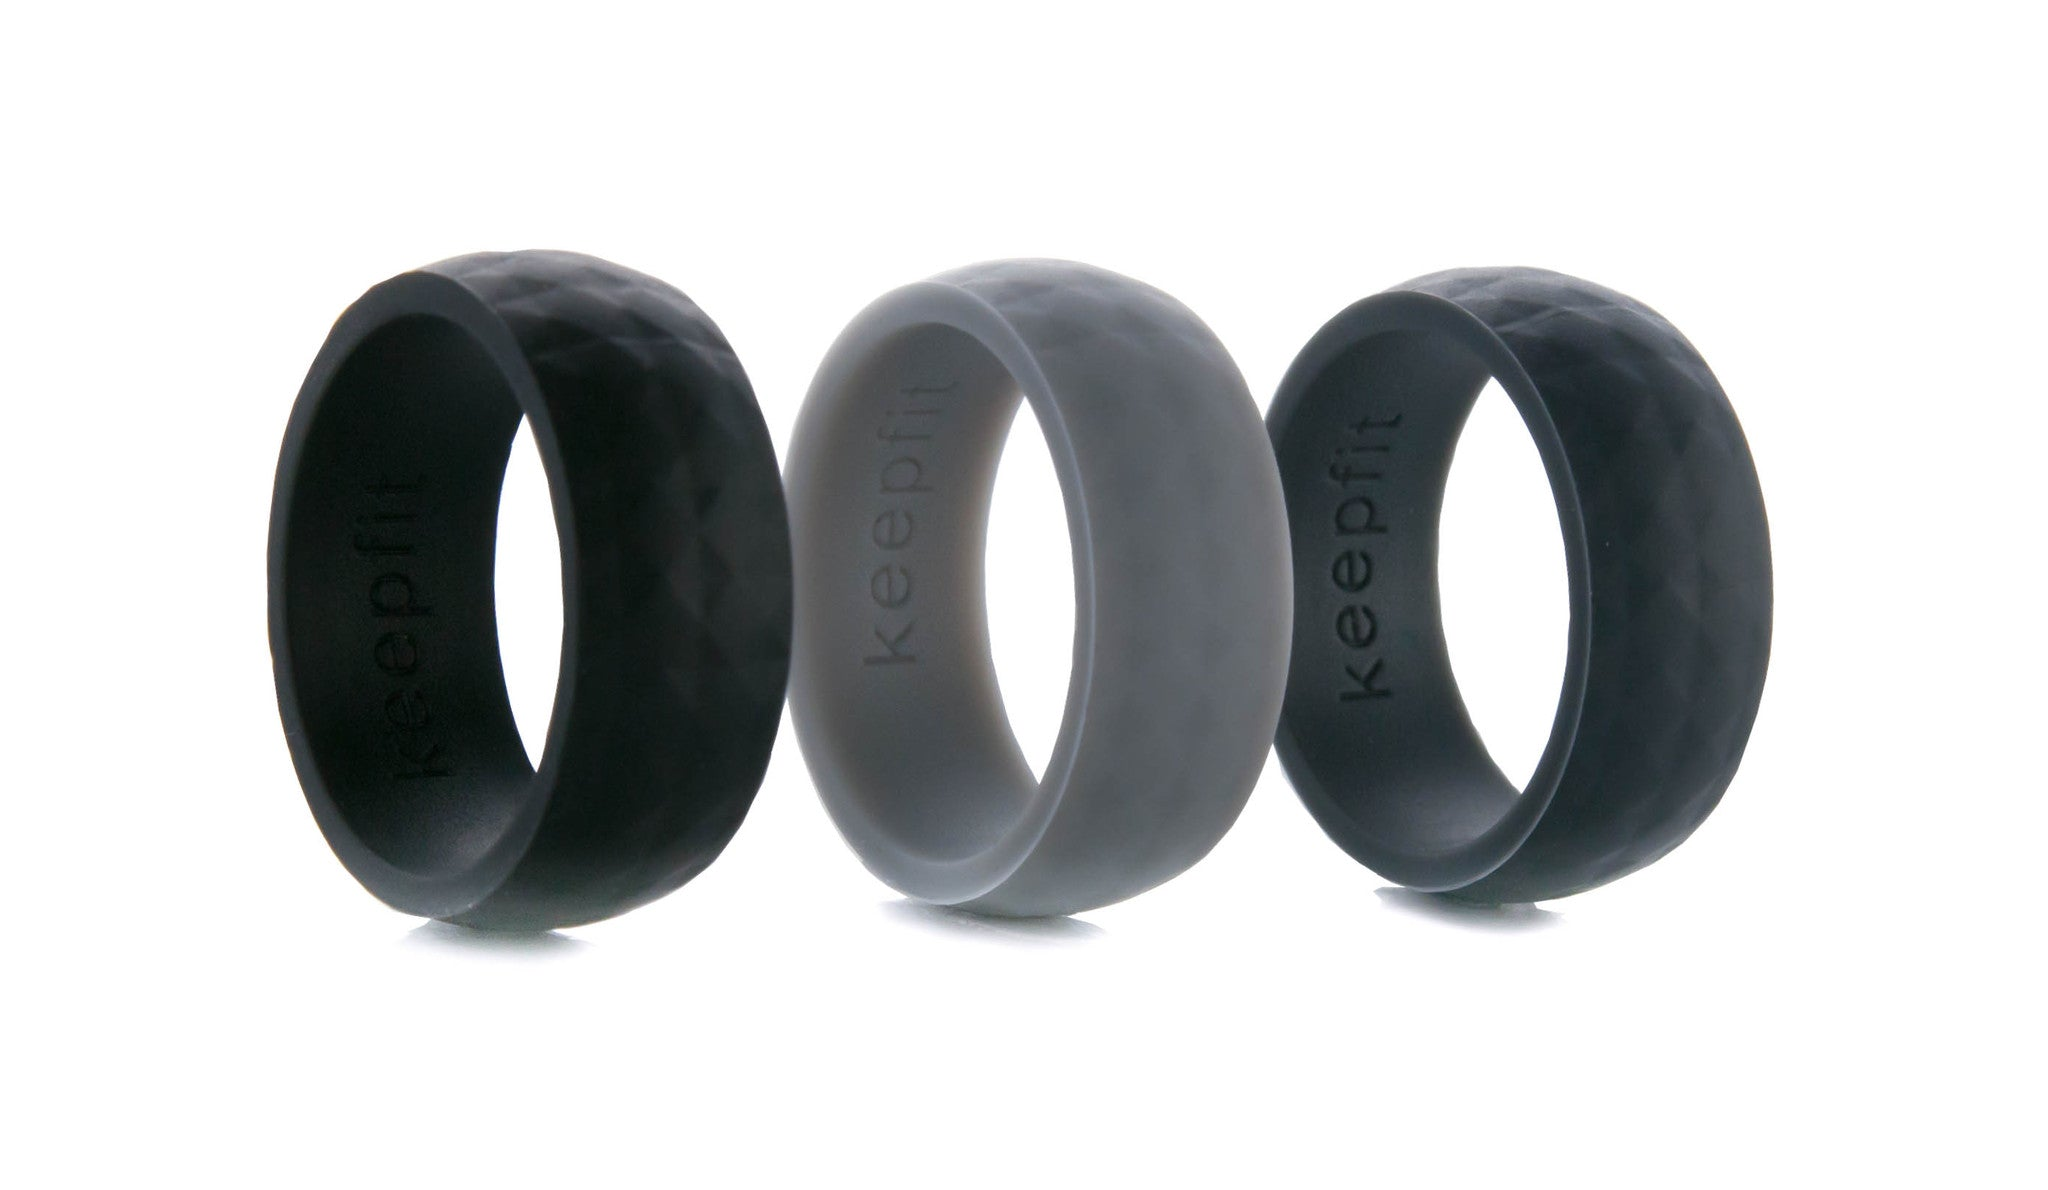 Silicon Wedding Bands.Men S Silicone Wedding Ring Modern Design Set Of 3